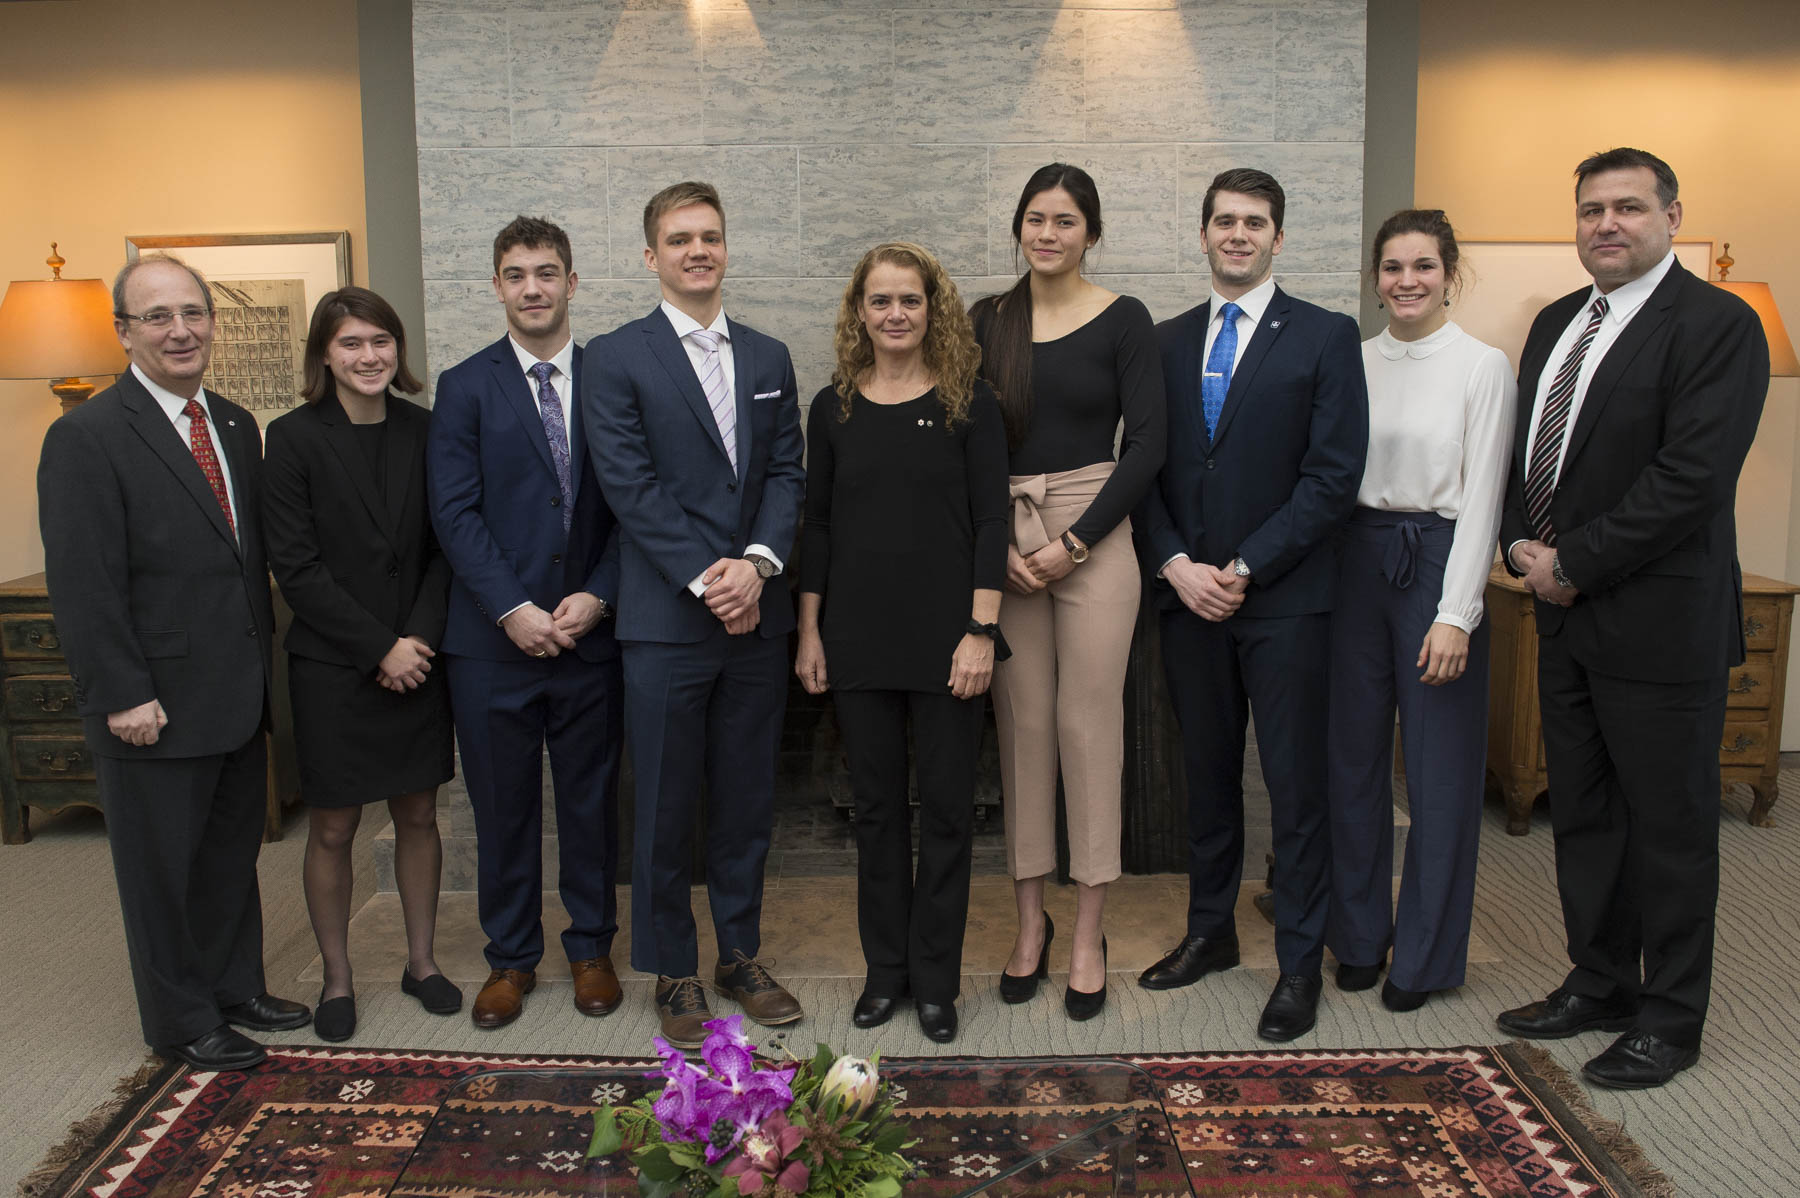 The Governor General's Academic All-Canadian Commendation recognizes student-athletes who have maintained an average of 80 per cent or higher over the academic year while playing on one or more of their university's varsity teams. These top eight Academic All-Canadians are selected by U SPORTS, formerly known as Canadian Interuniversity Sport, and its four conferences.